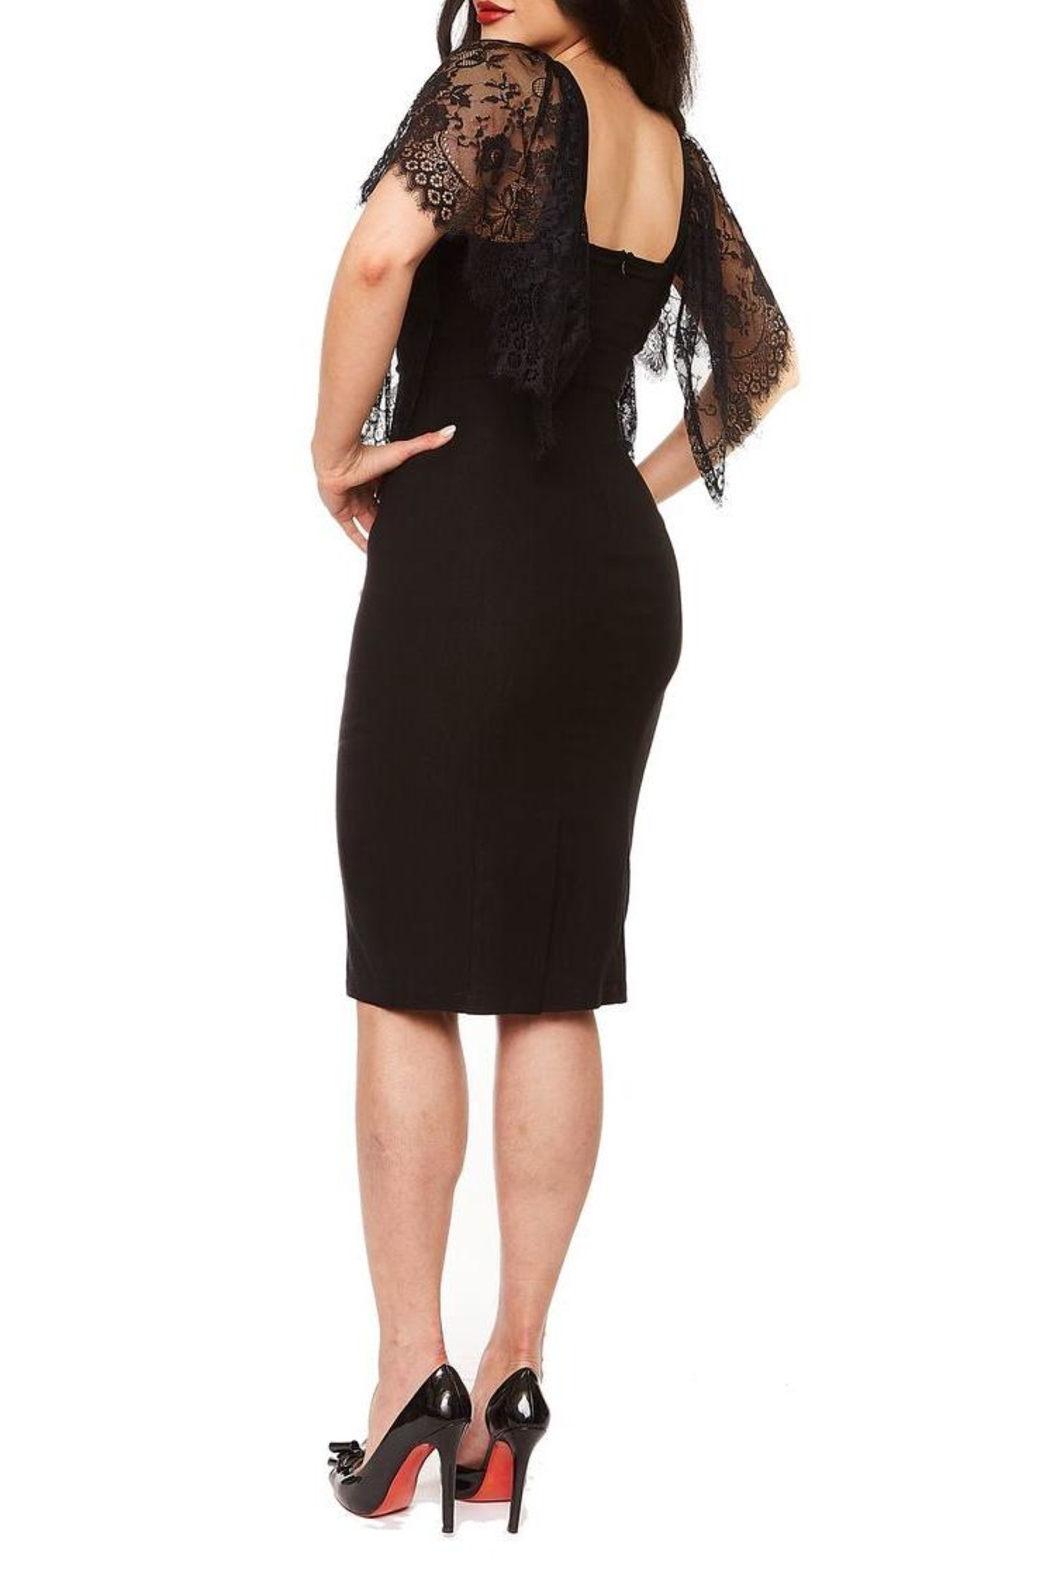 Rebel Love Clothing Witchy Woman Dress - Side Cropped Image